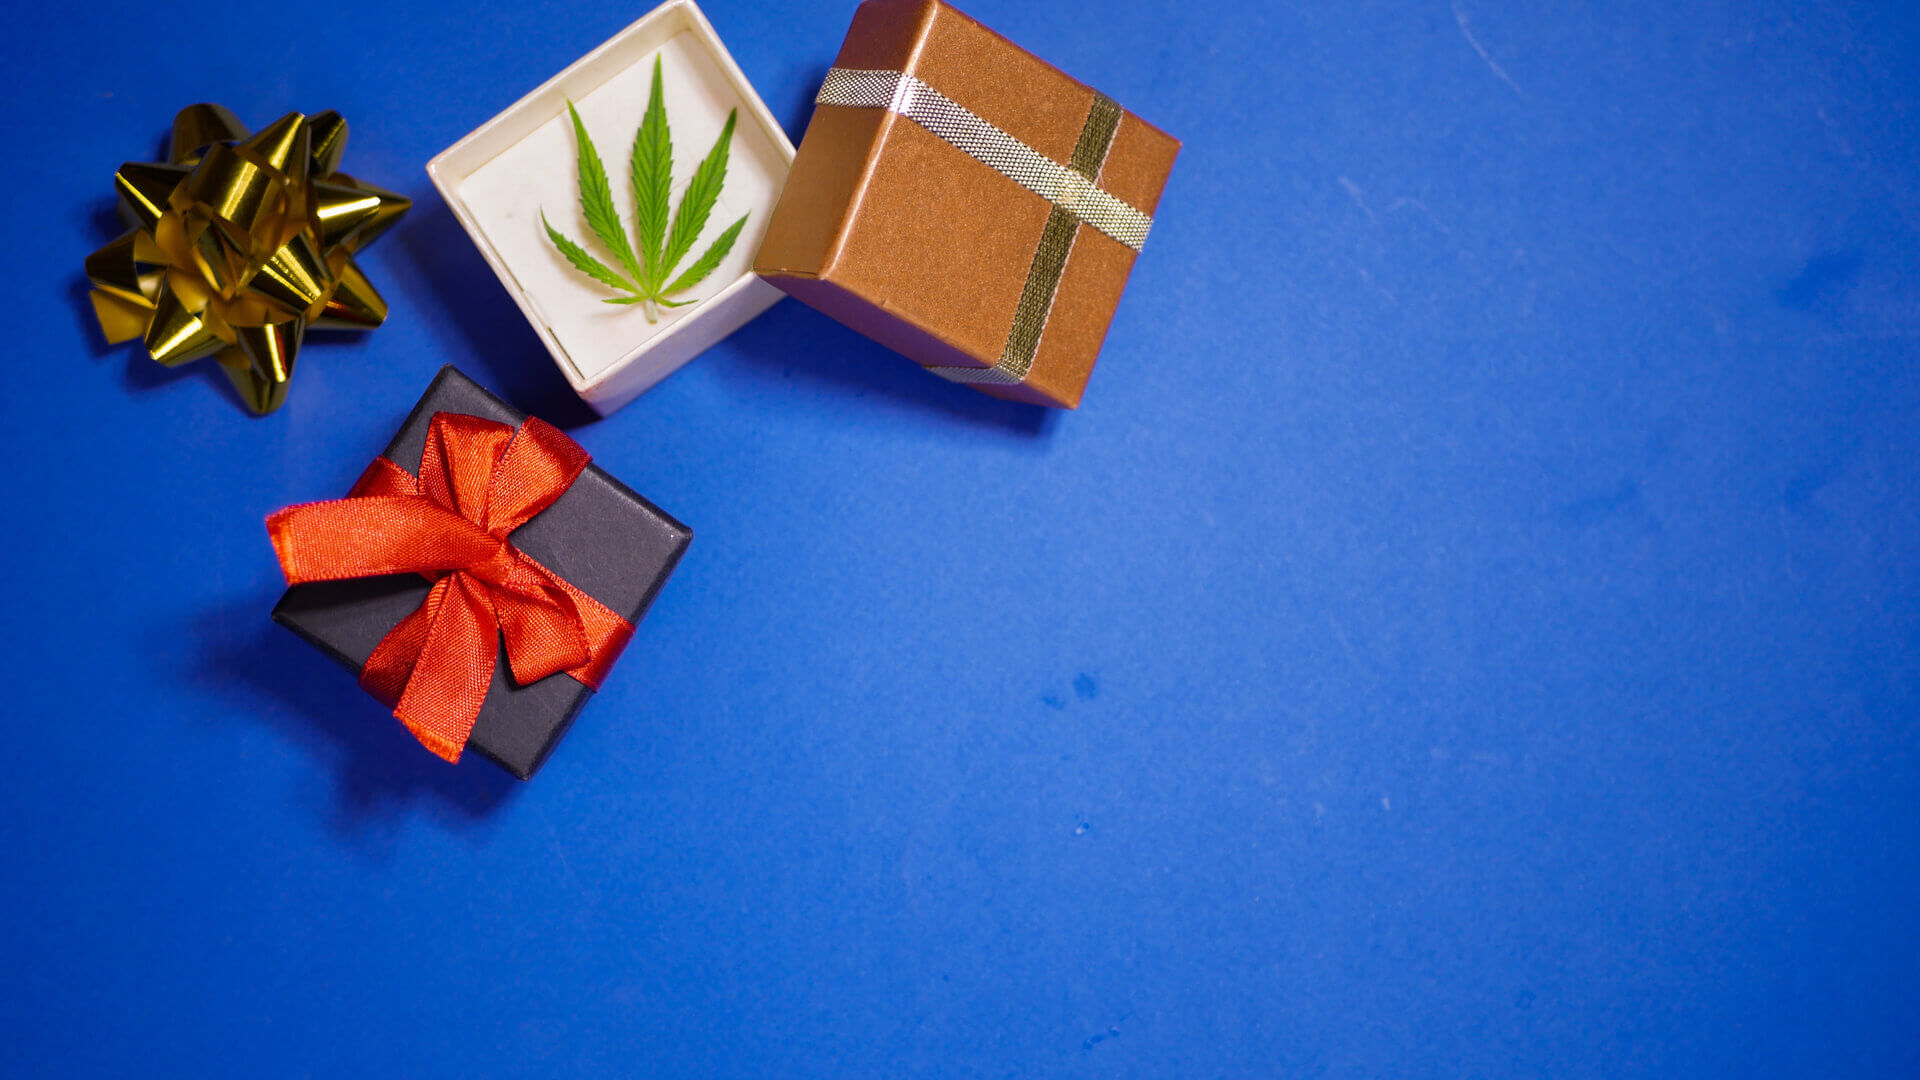 2020 Gifts: The Best Cannabis Care Packages